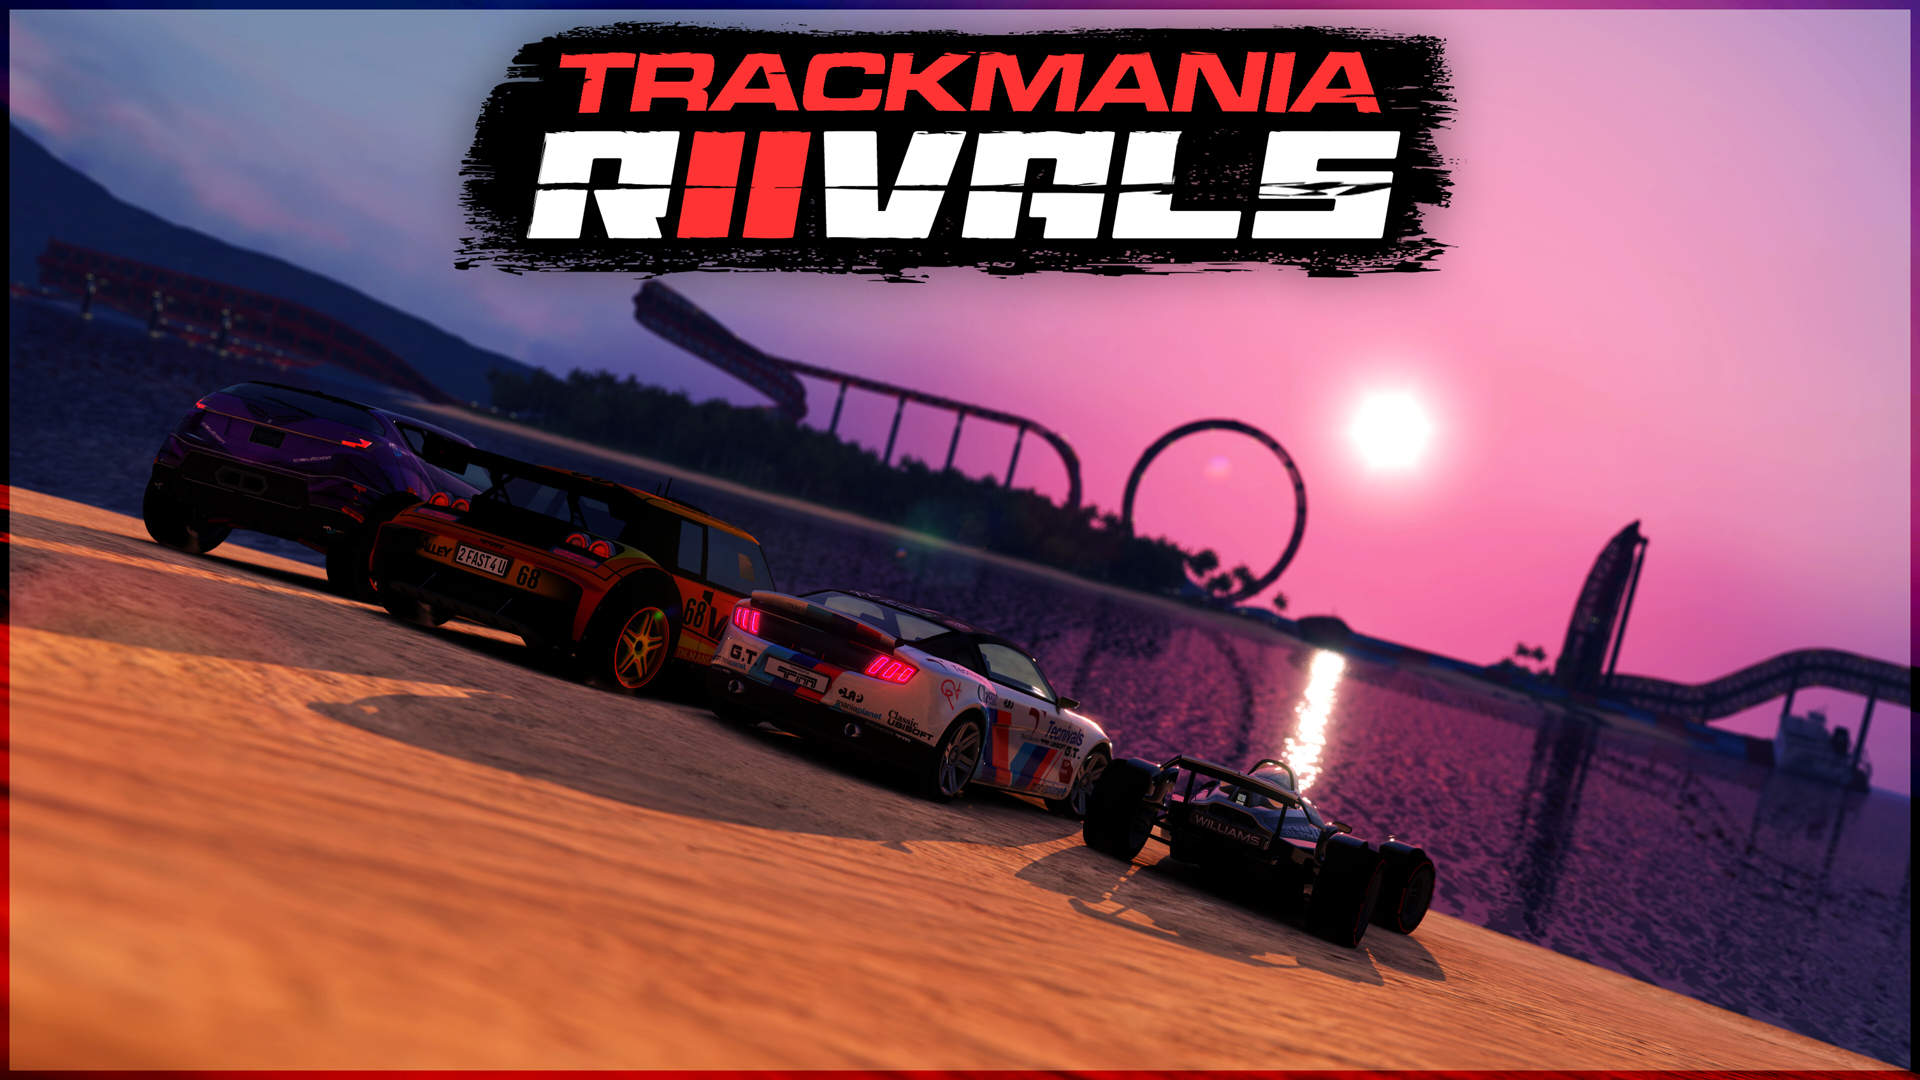 trackmania 2 valley free download full version